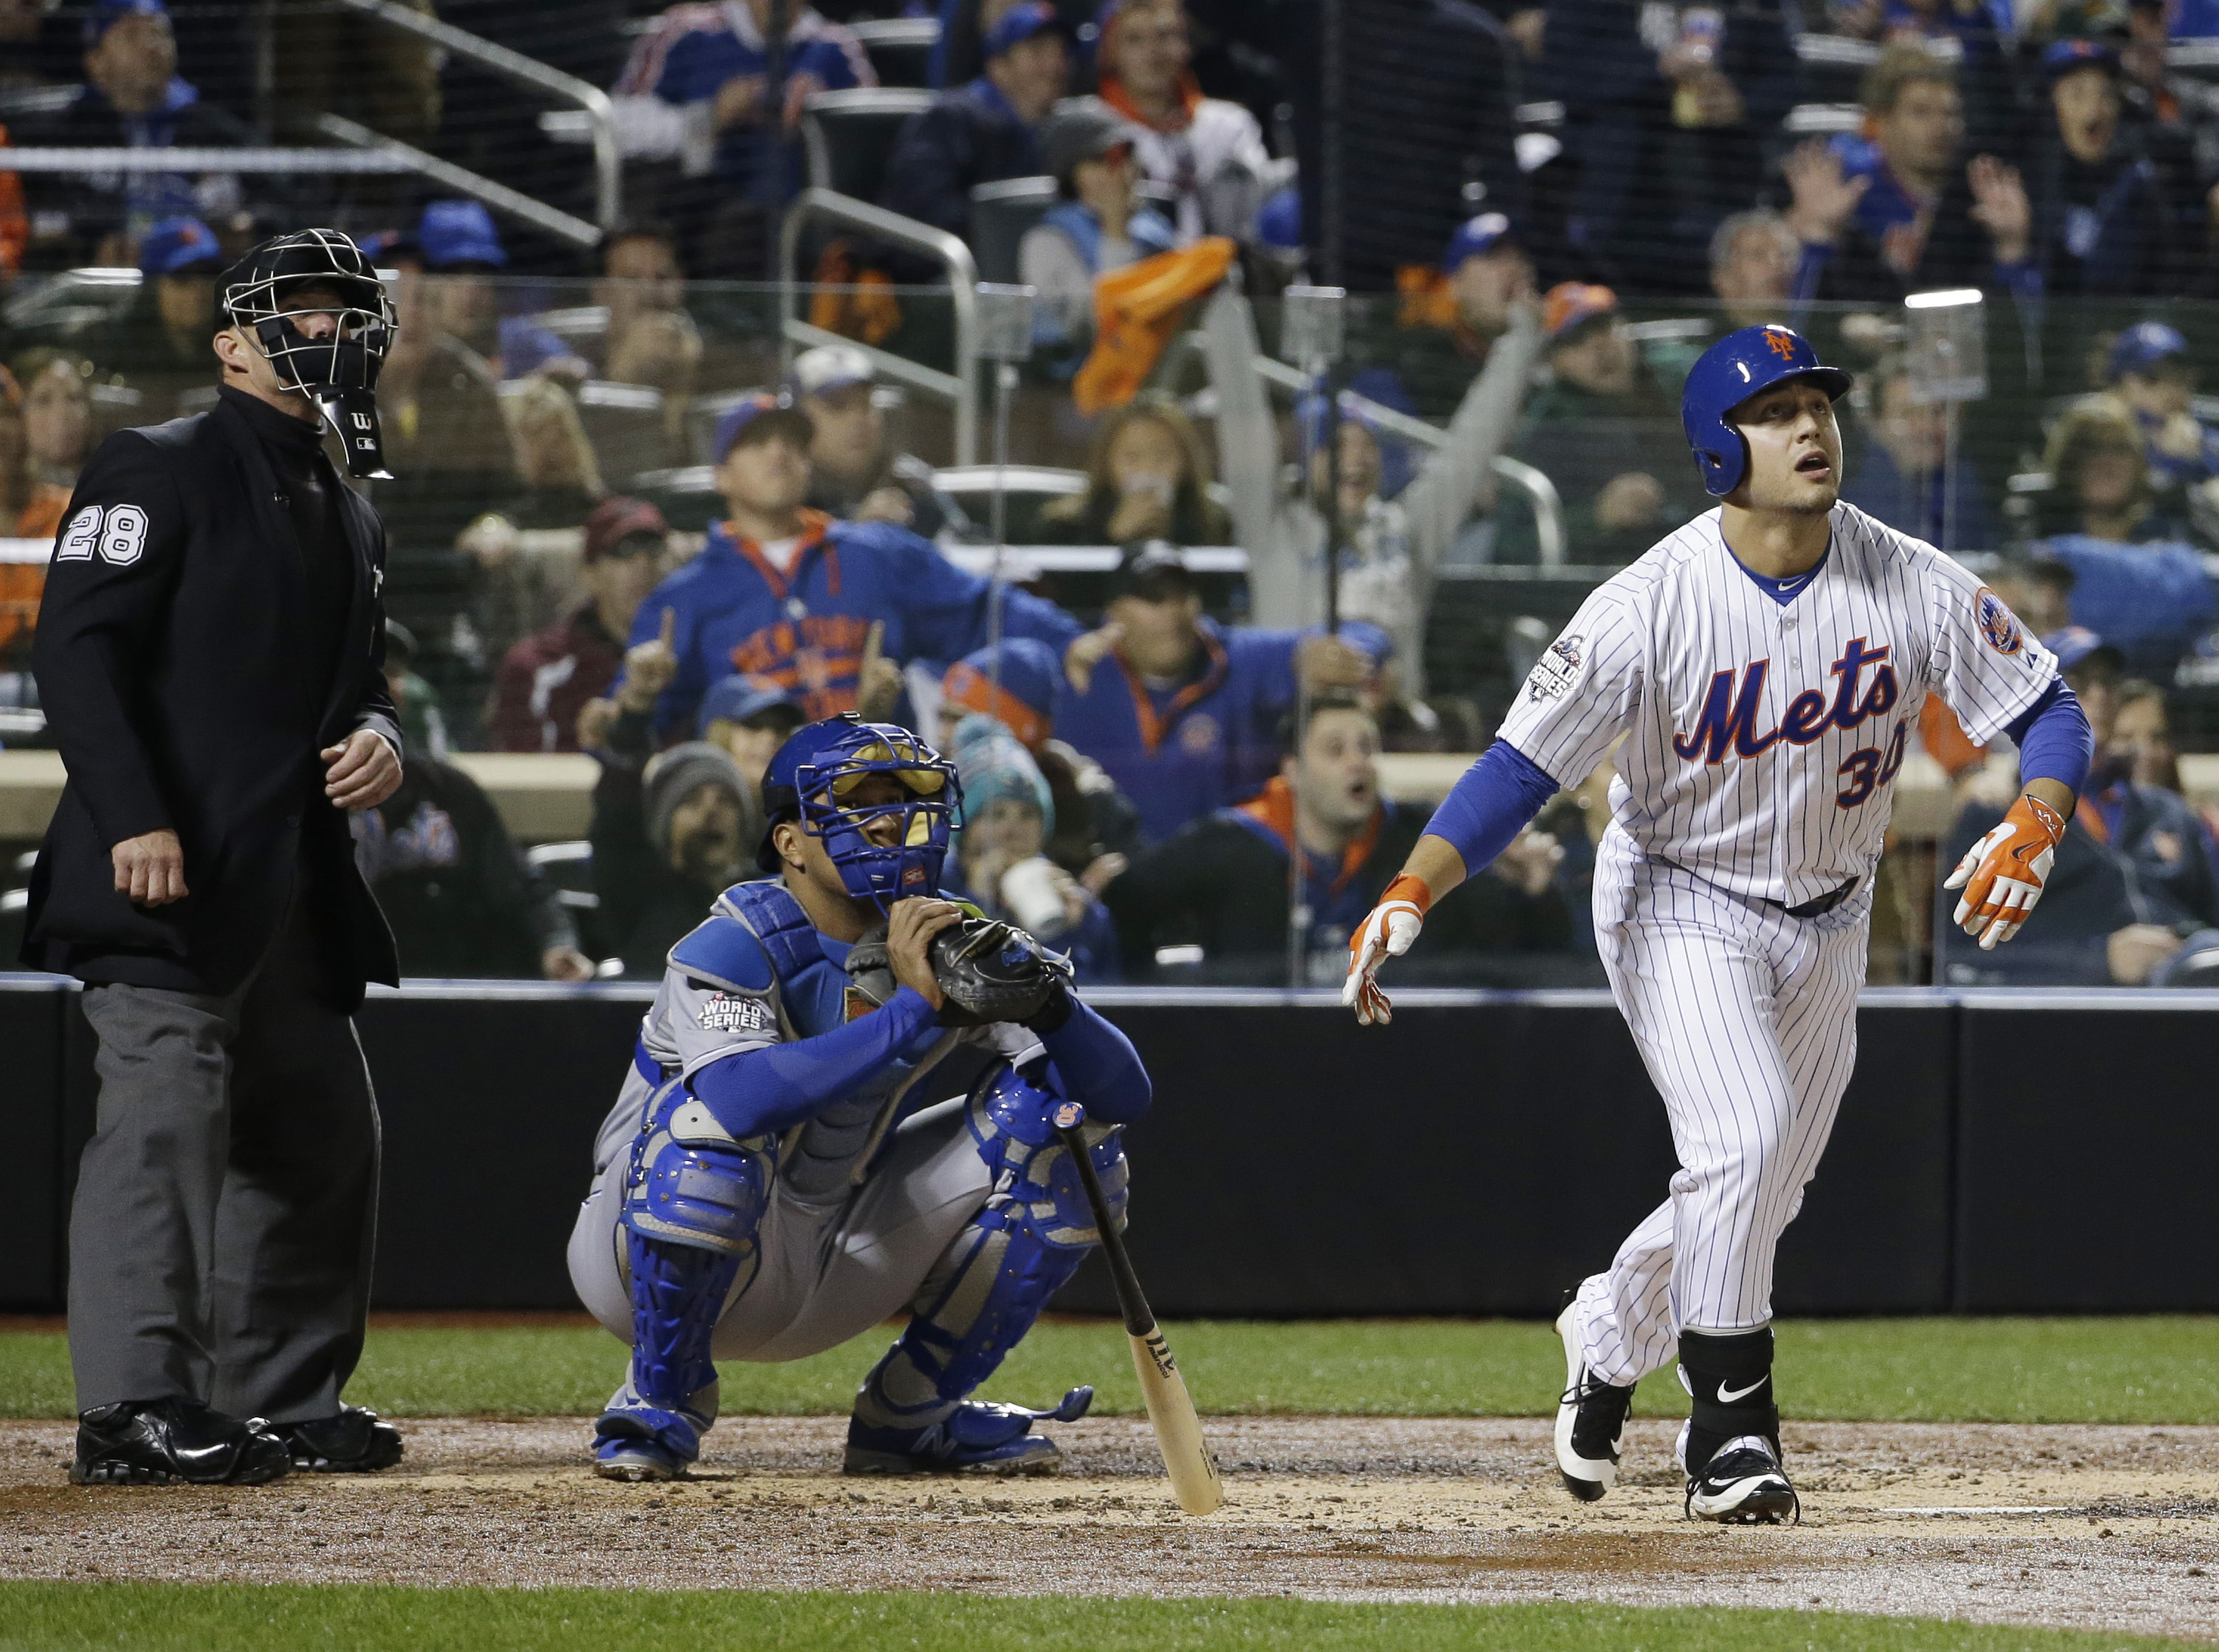 New York Mets' Michael Conforto hits a home run during the third inning of Game 4 of the Major League Baseball World Series against the Kansas City Royals Saturday, Oct. 31, 2015, in New York. (AP Photo/David J. Phillip)